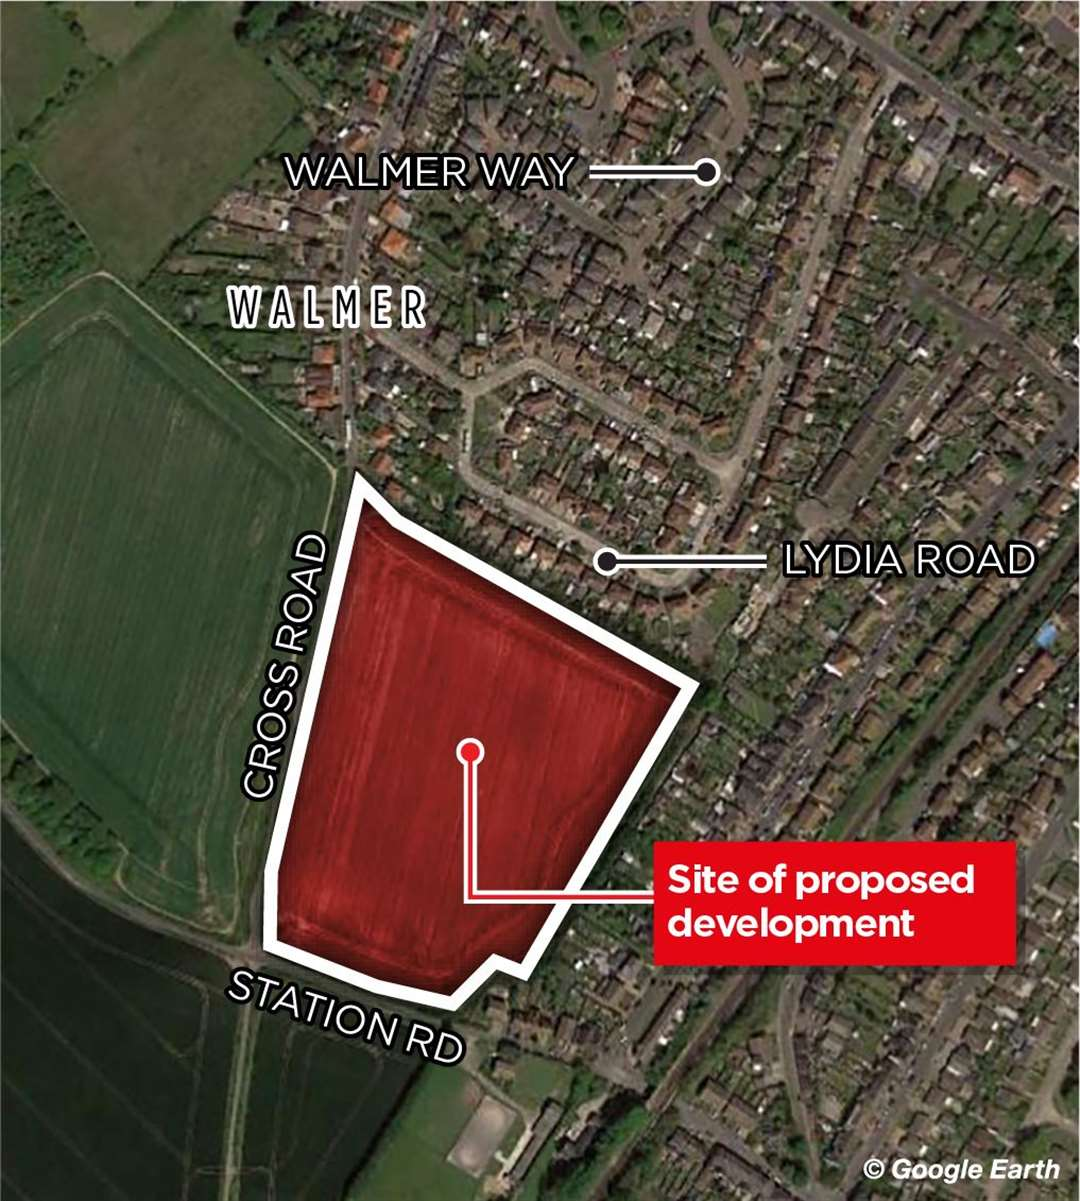 The proposed housing site in relation to Walmer Way